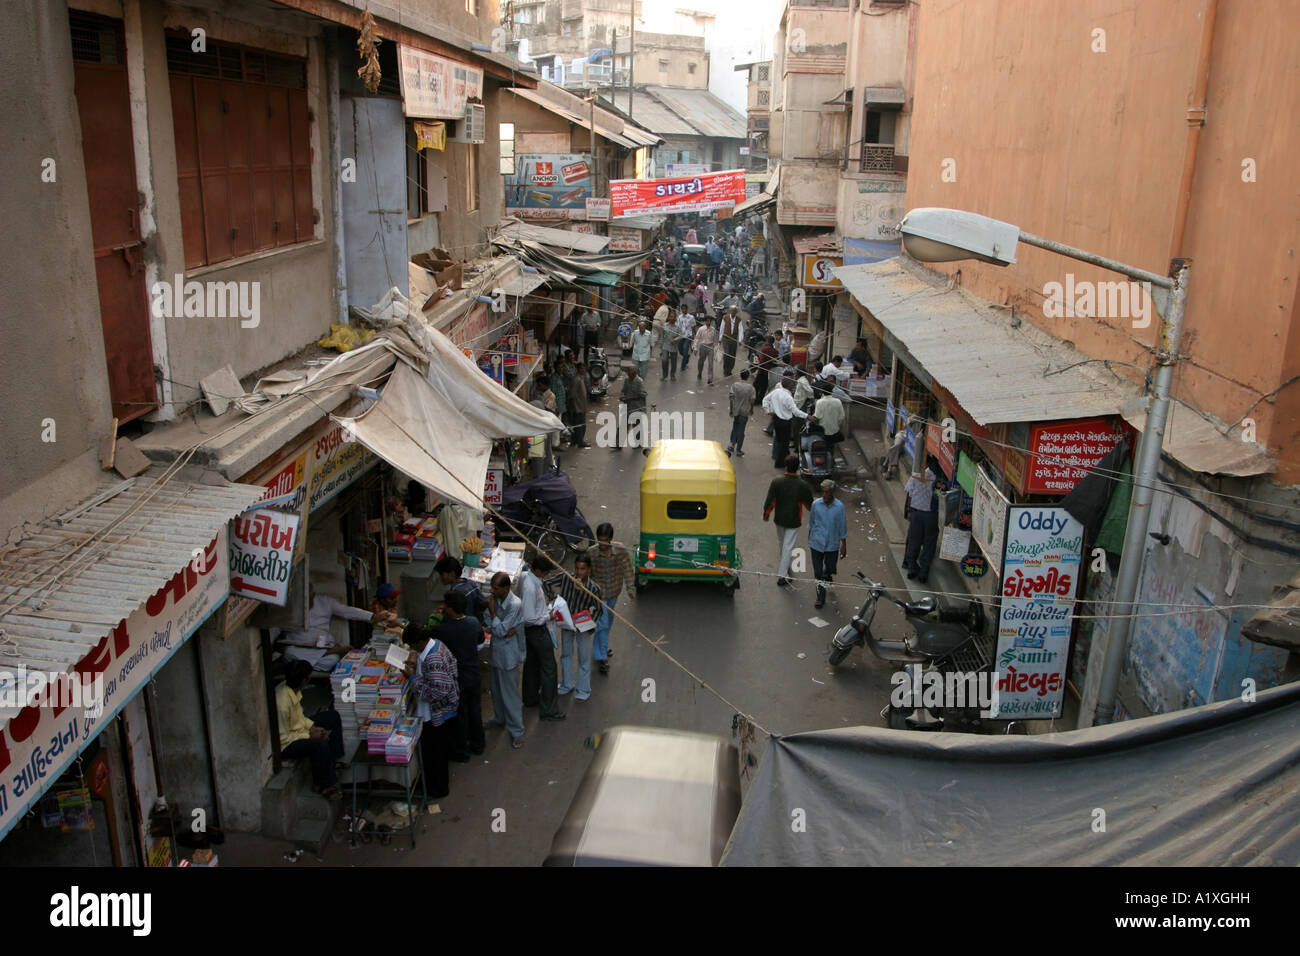 Back streets of India - Stock Image